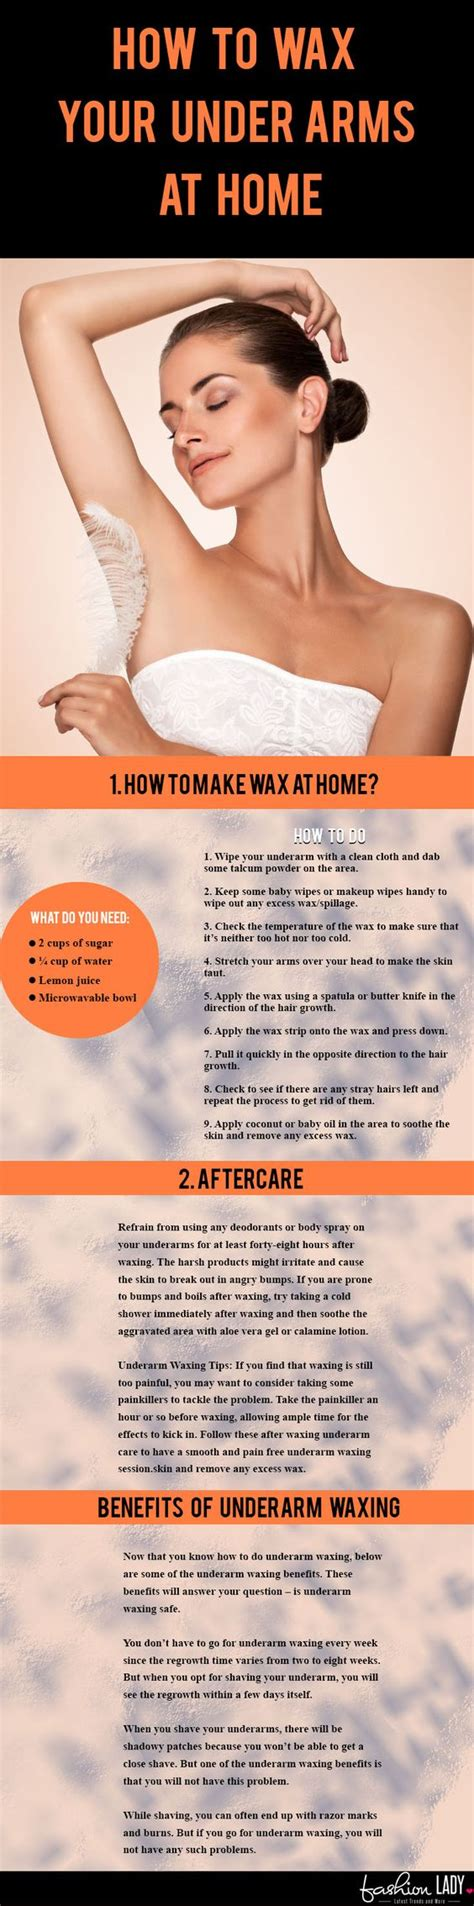 how to wax your underarms at home